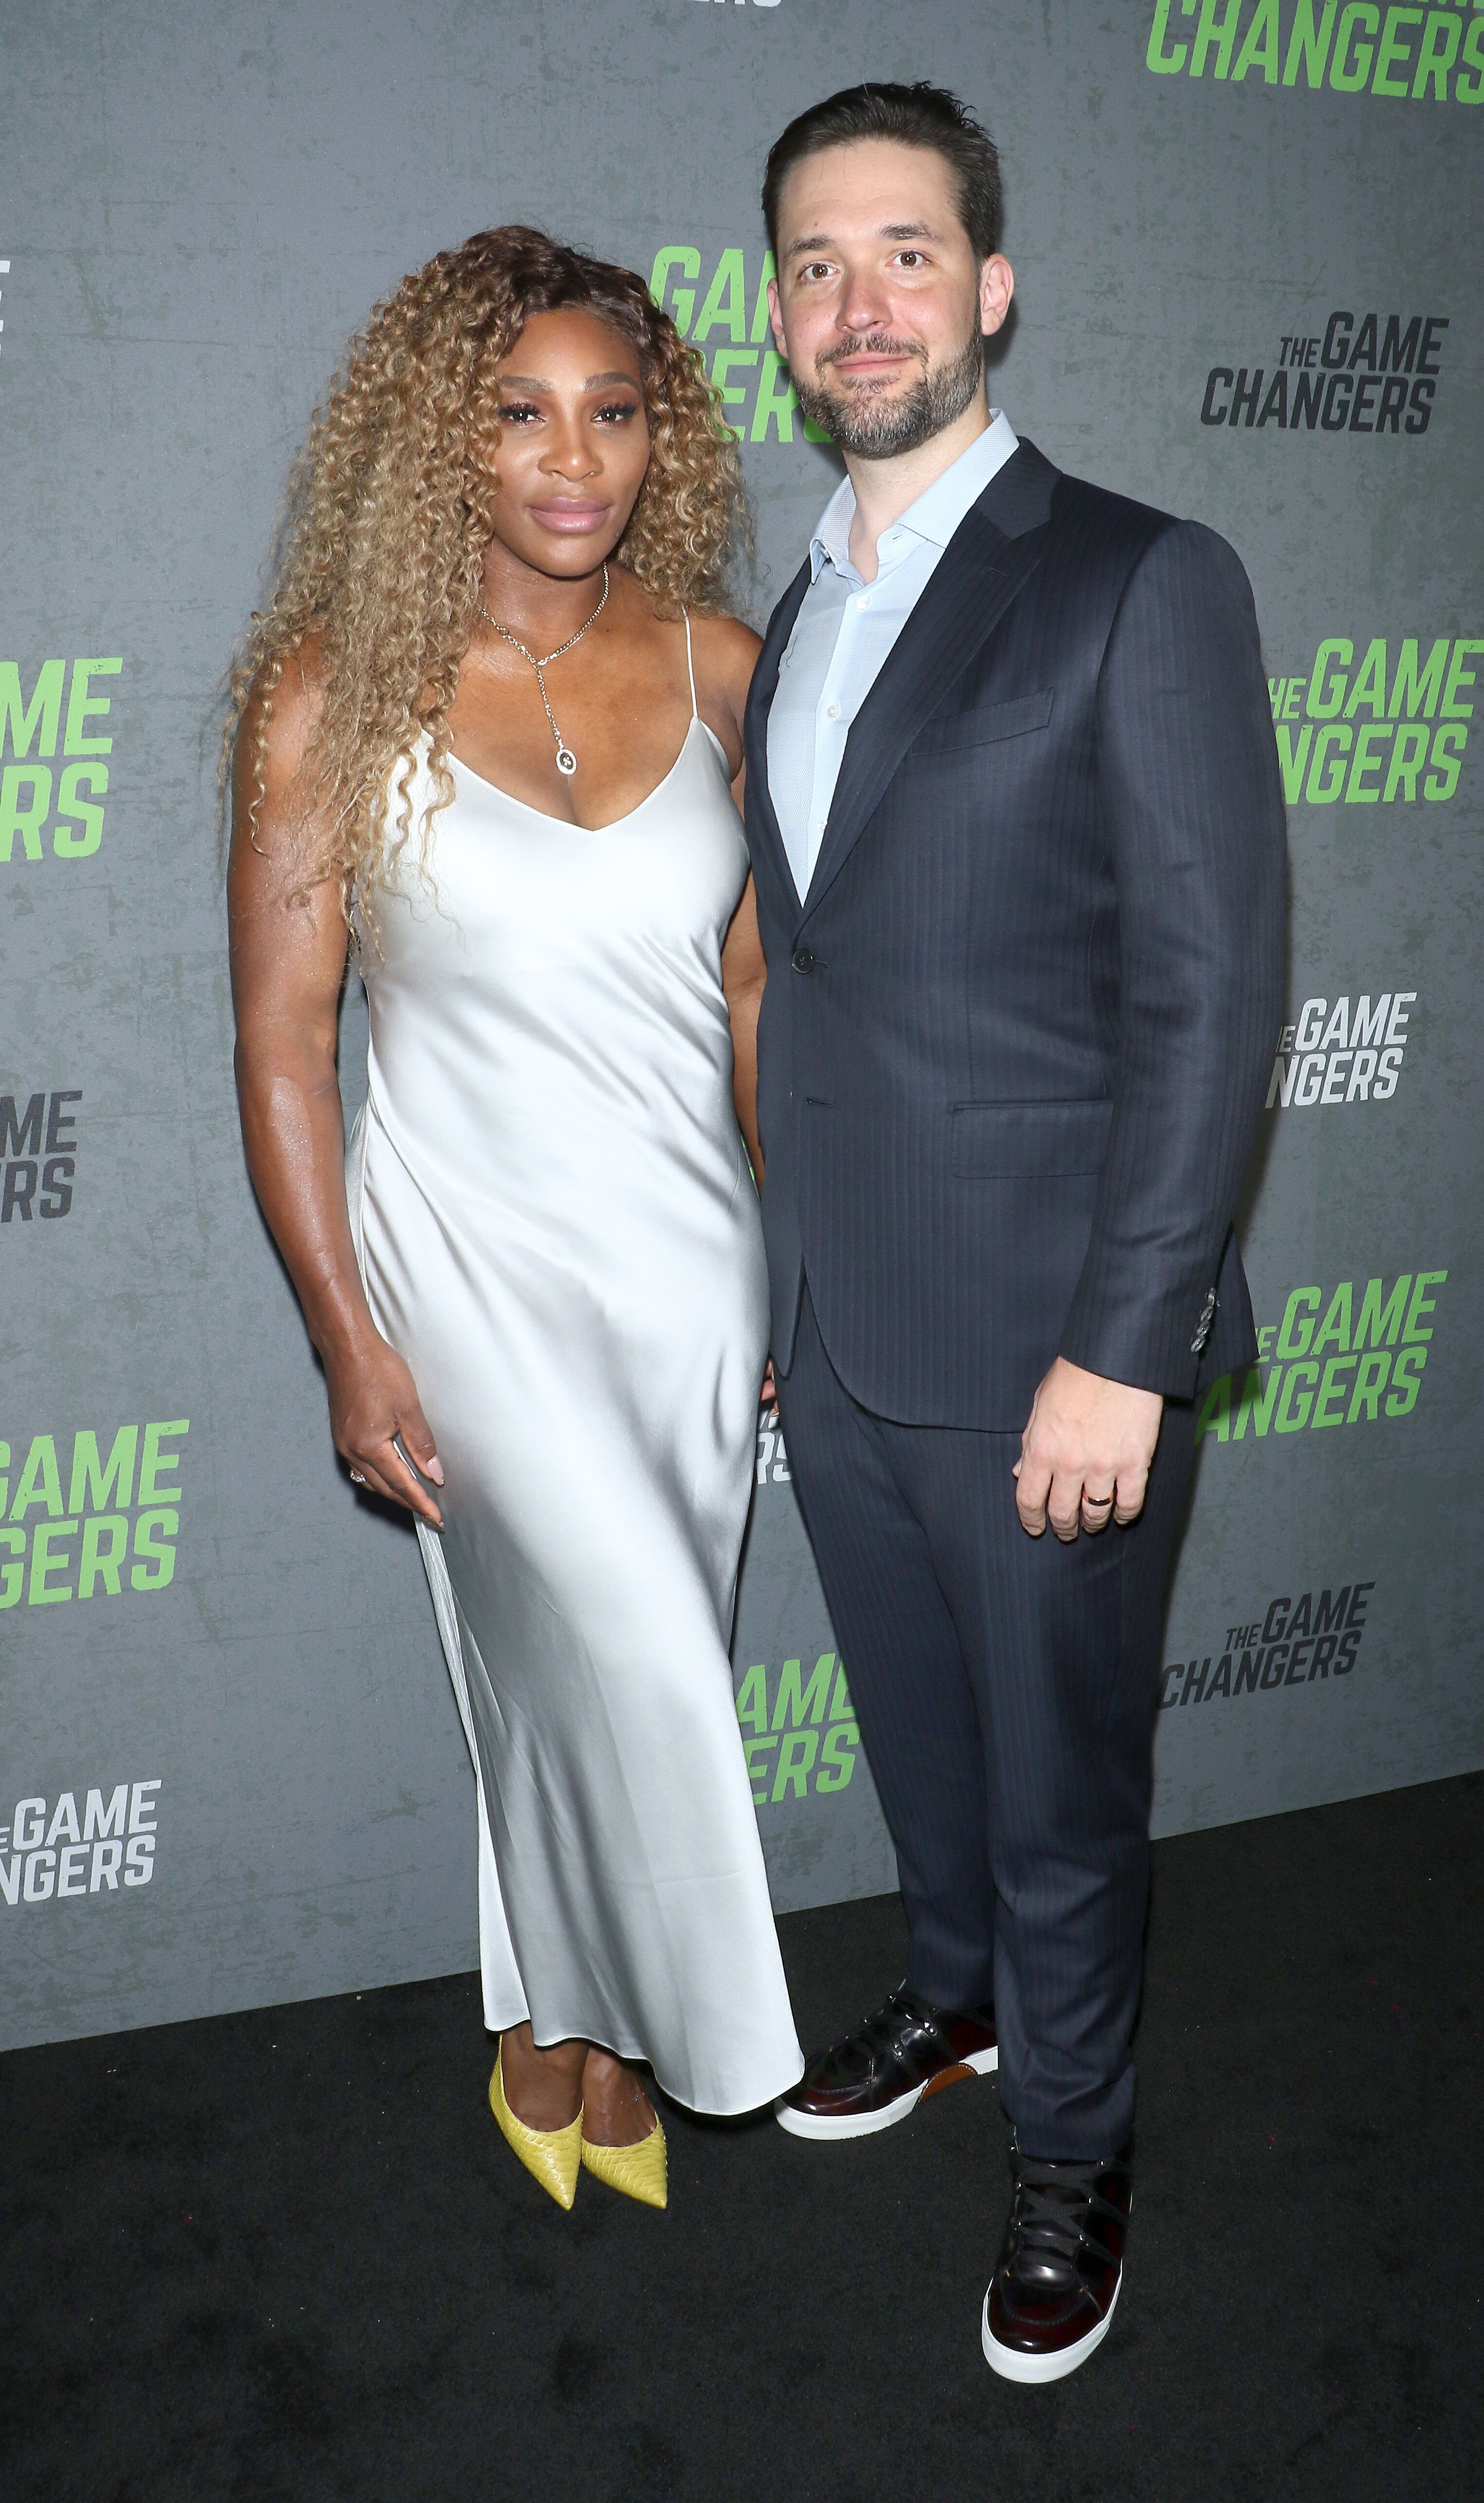 Serena Williams and Alexis Ohanian Sr. at the special event for Game Changers   Source: Getty Images/GlobalImagesUkraine